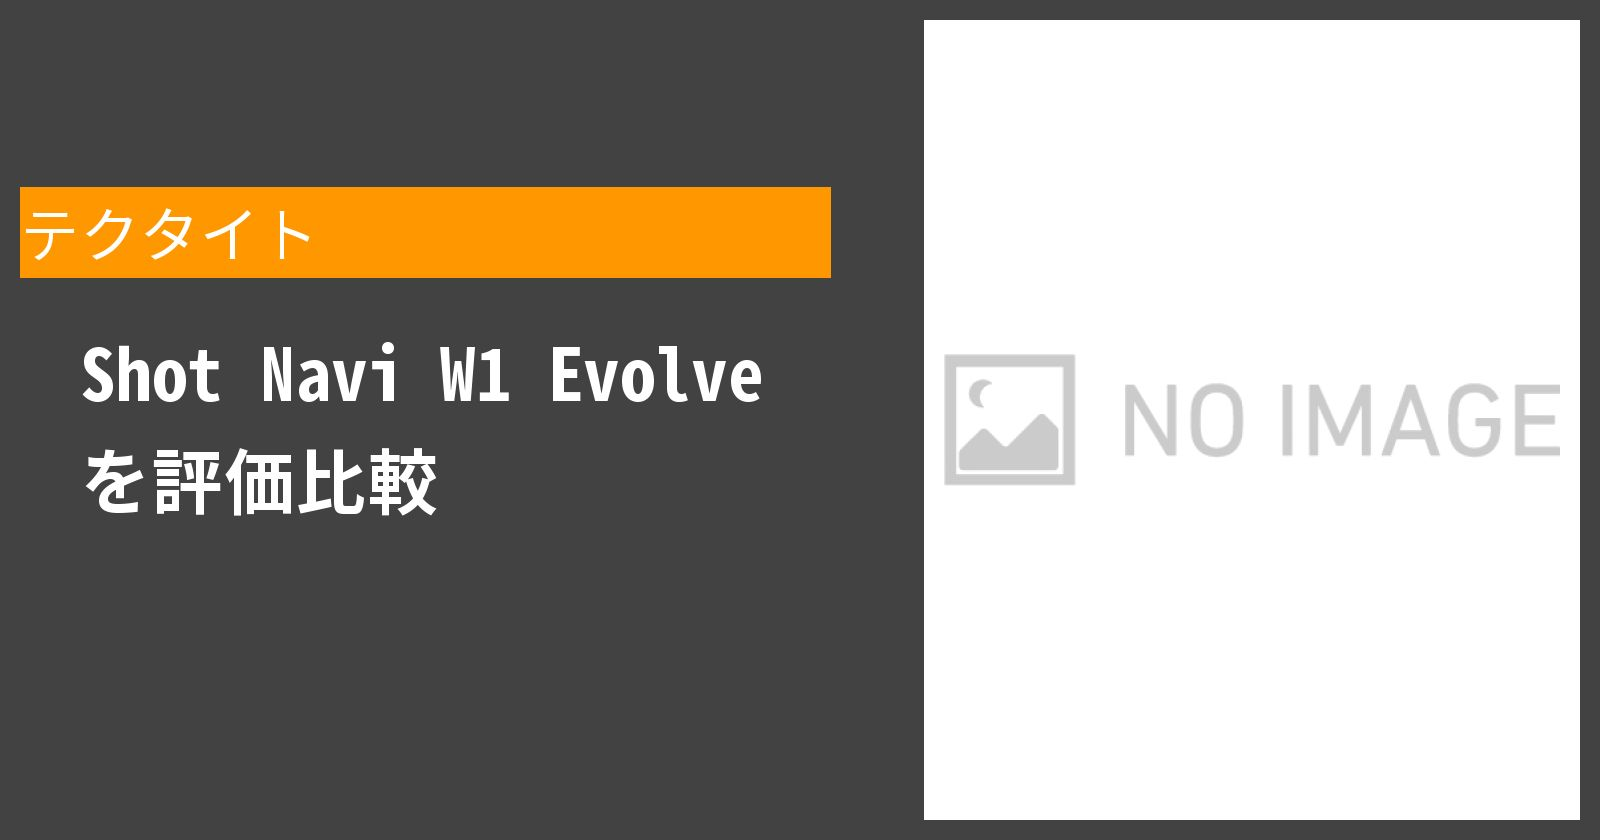 Shot Navi W1 Evolveを徹底評価